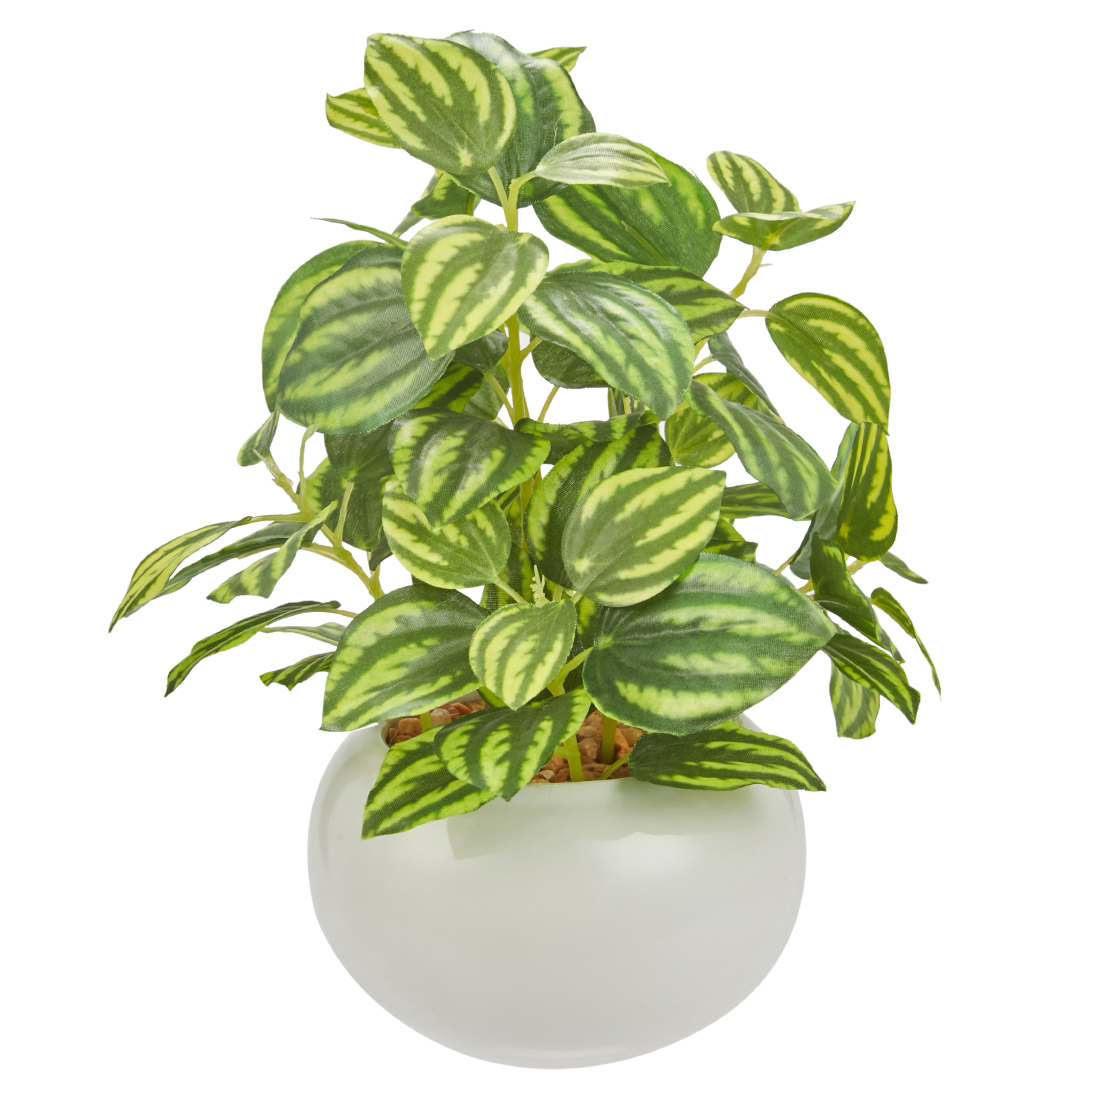 Sage Sandersii Plant 17 Cm Artificial Plants in Green Colour by Living Essence